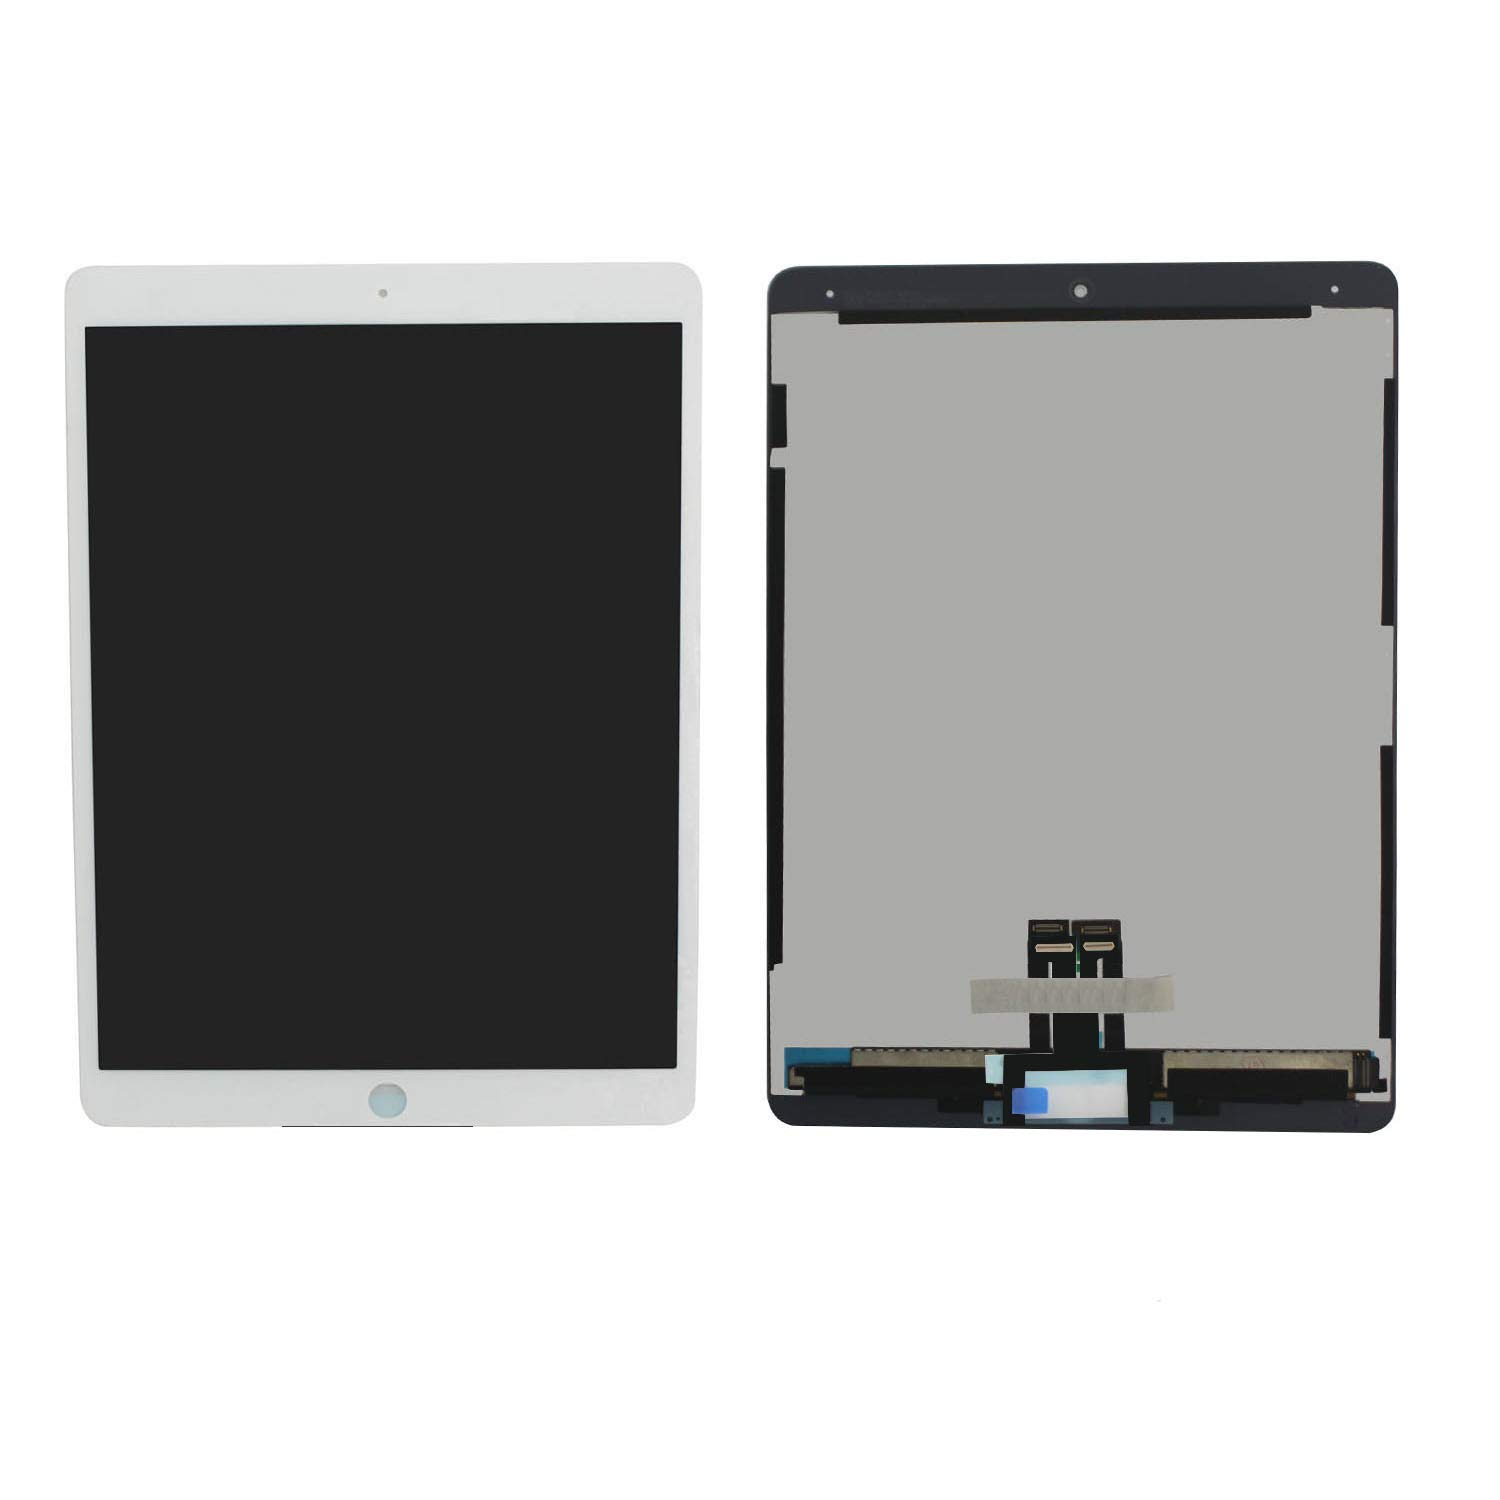 Compatible with iPad Pro 10.5 inch LCD Dispaly Touch Screen Digitizer Assembly for Model A1701,1709 + Free Tool Kits (White)